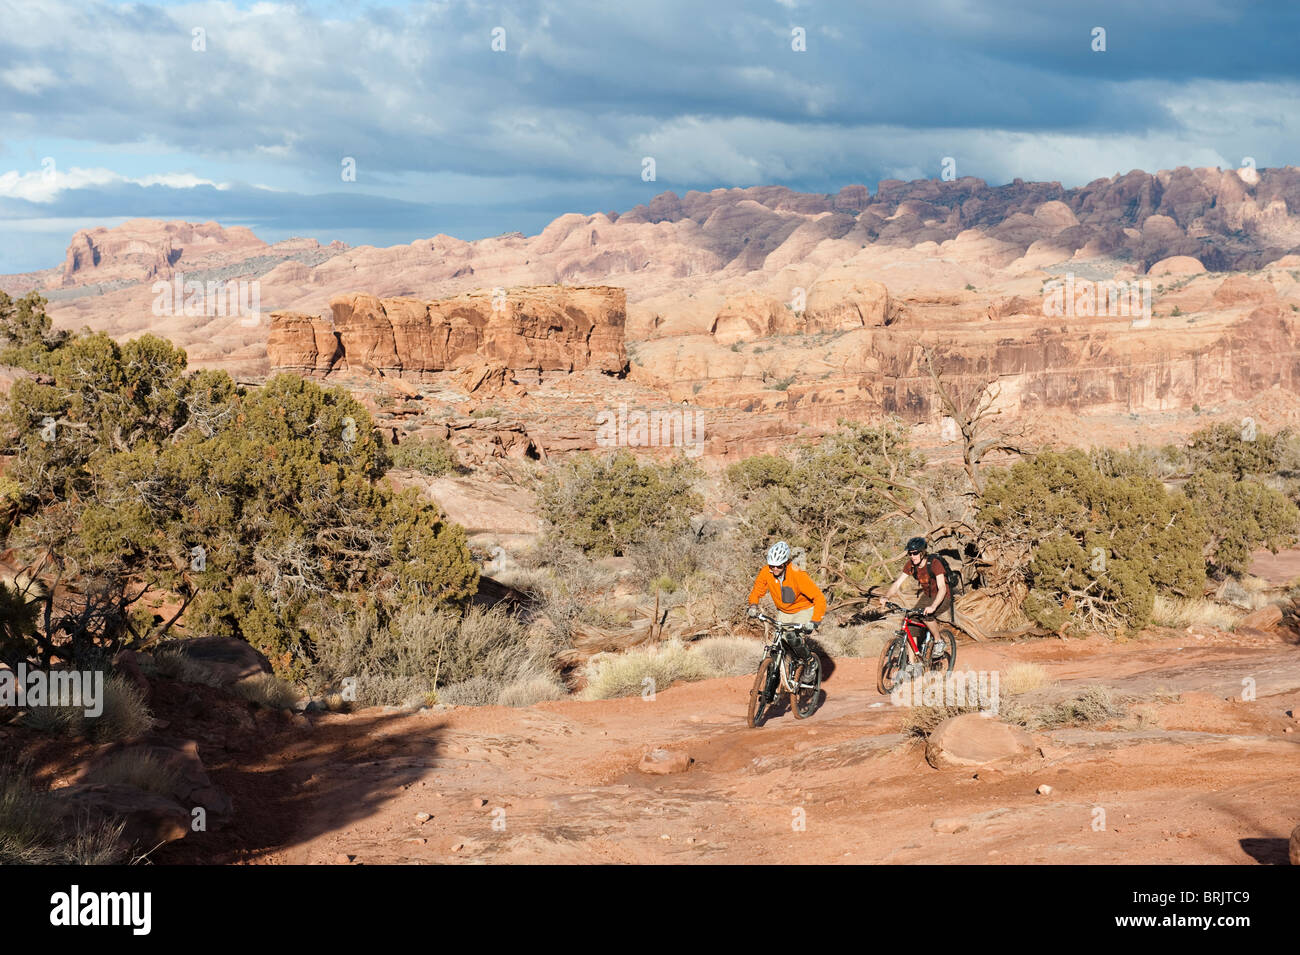 Two young men ride their bikes across the slickrock on the Amasa Back Trail in Moab, UT. - Stock Image